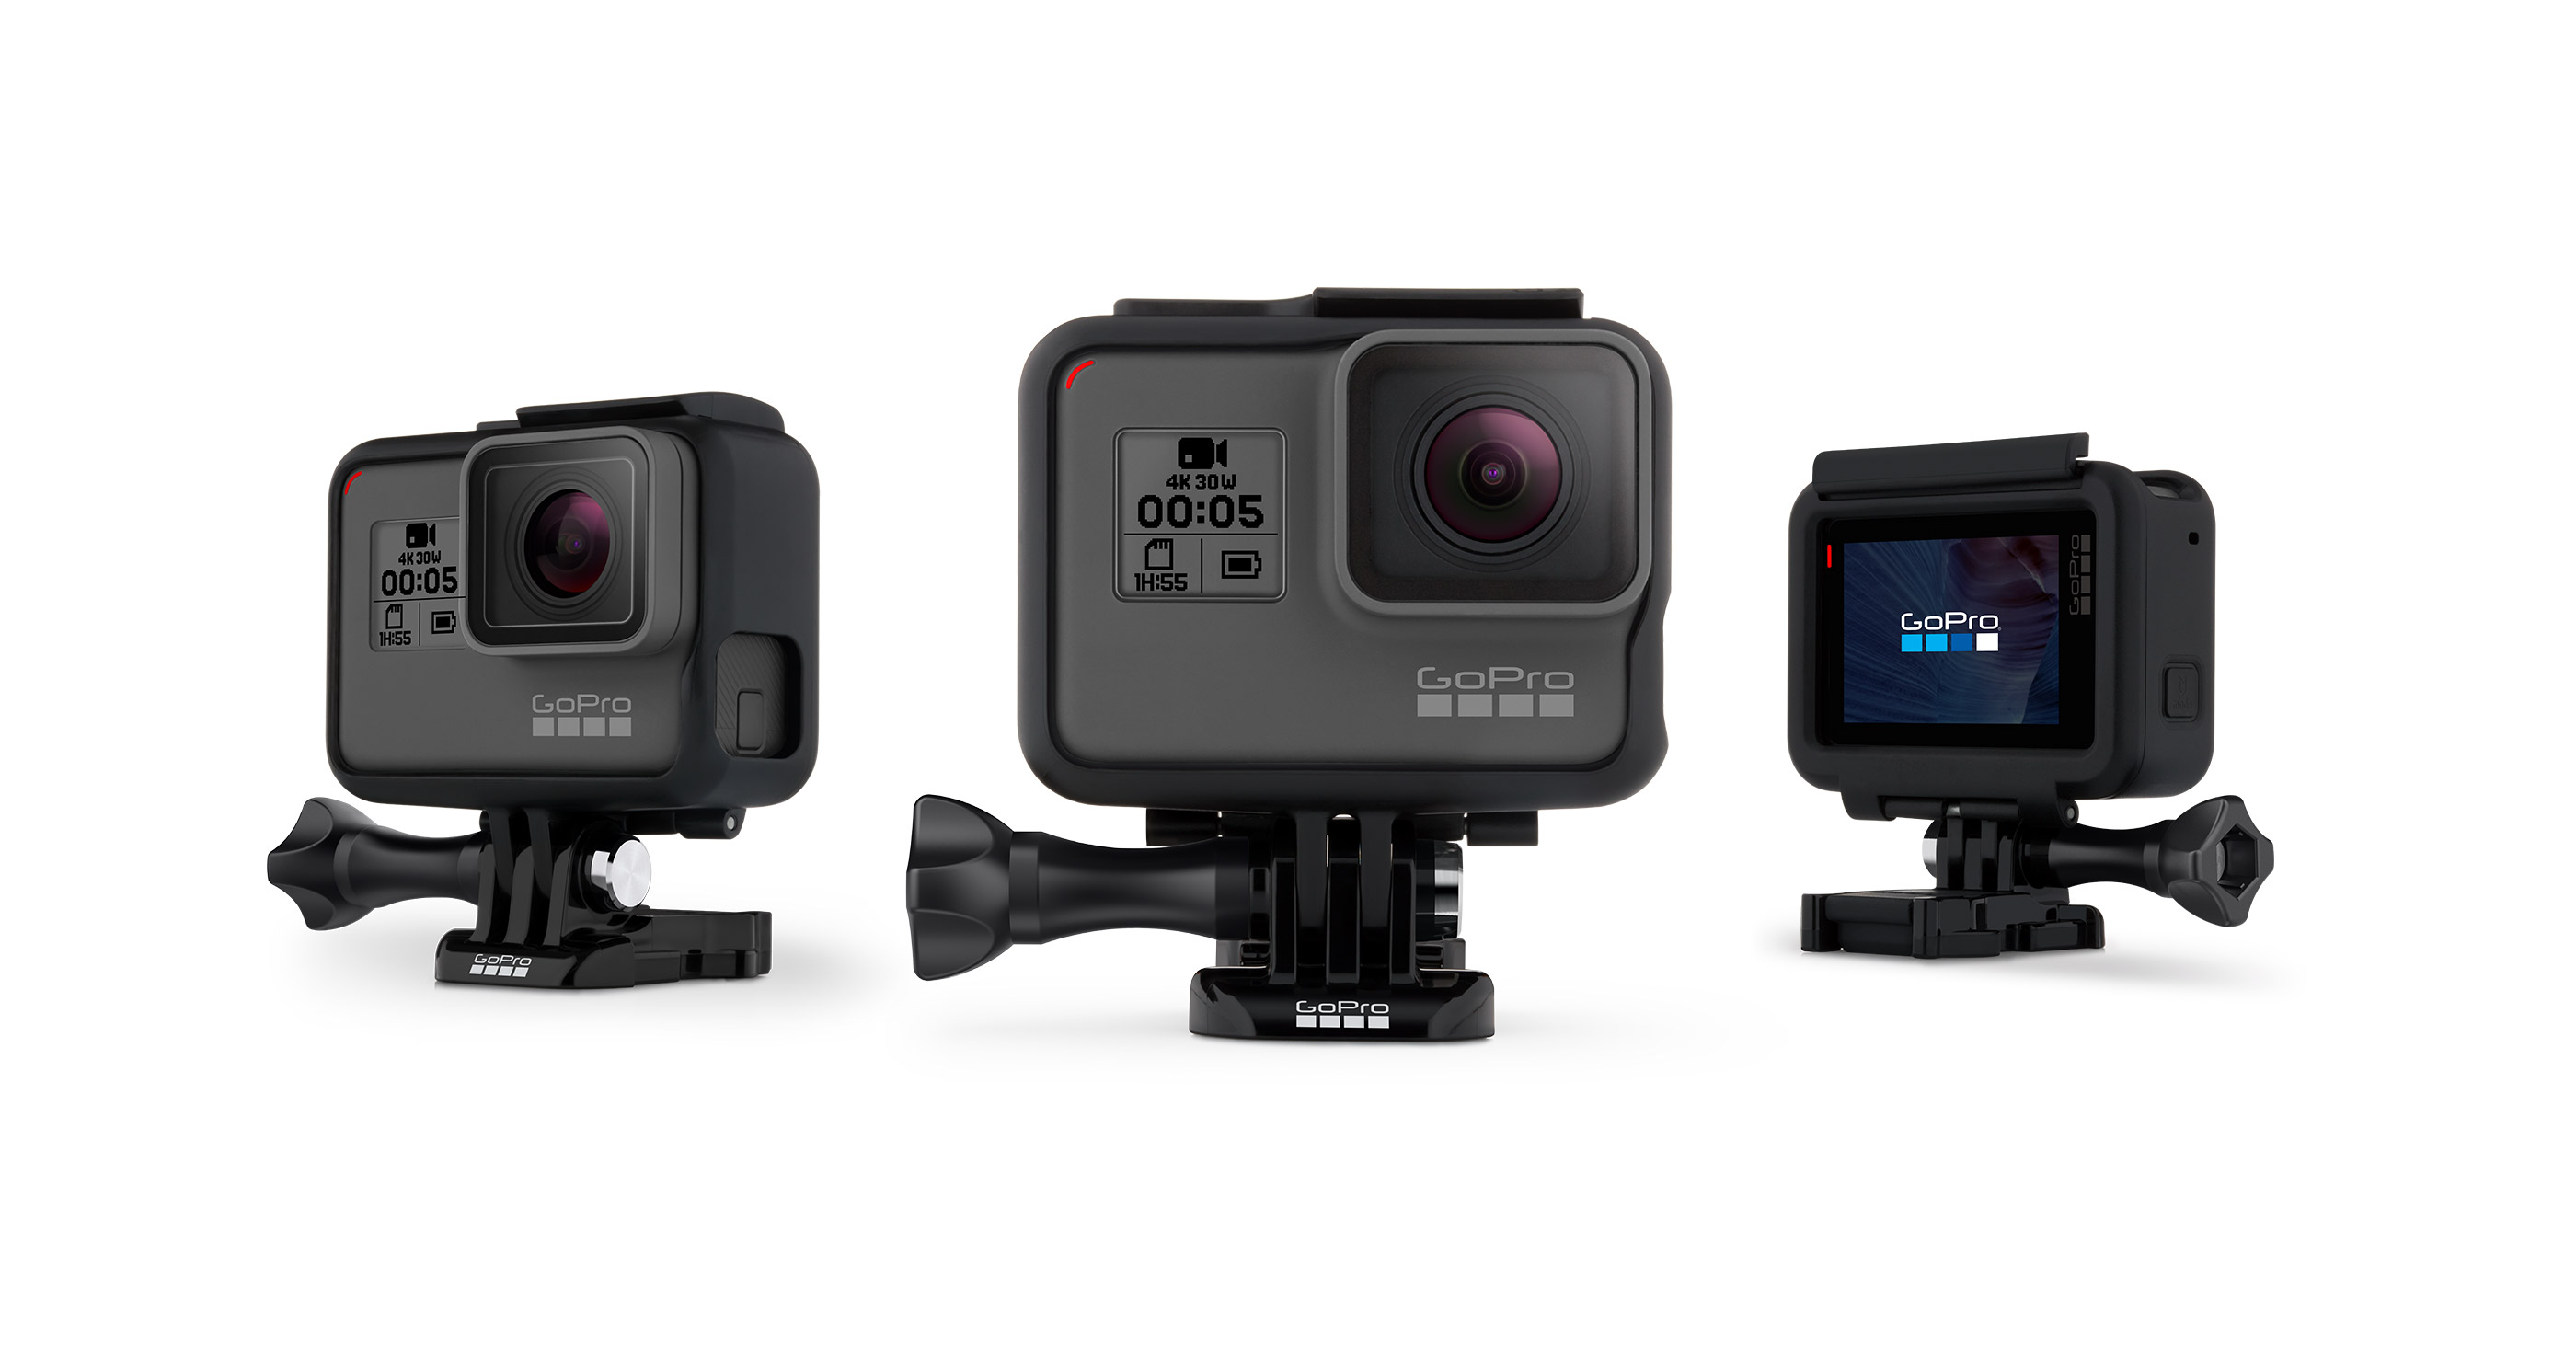 GoPro The Frame (HERO5 Black) - Noel Leeming